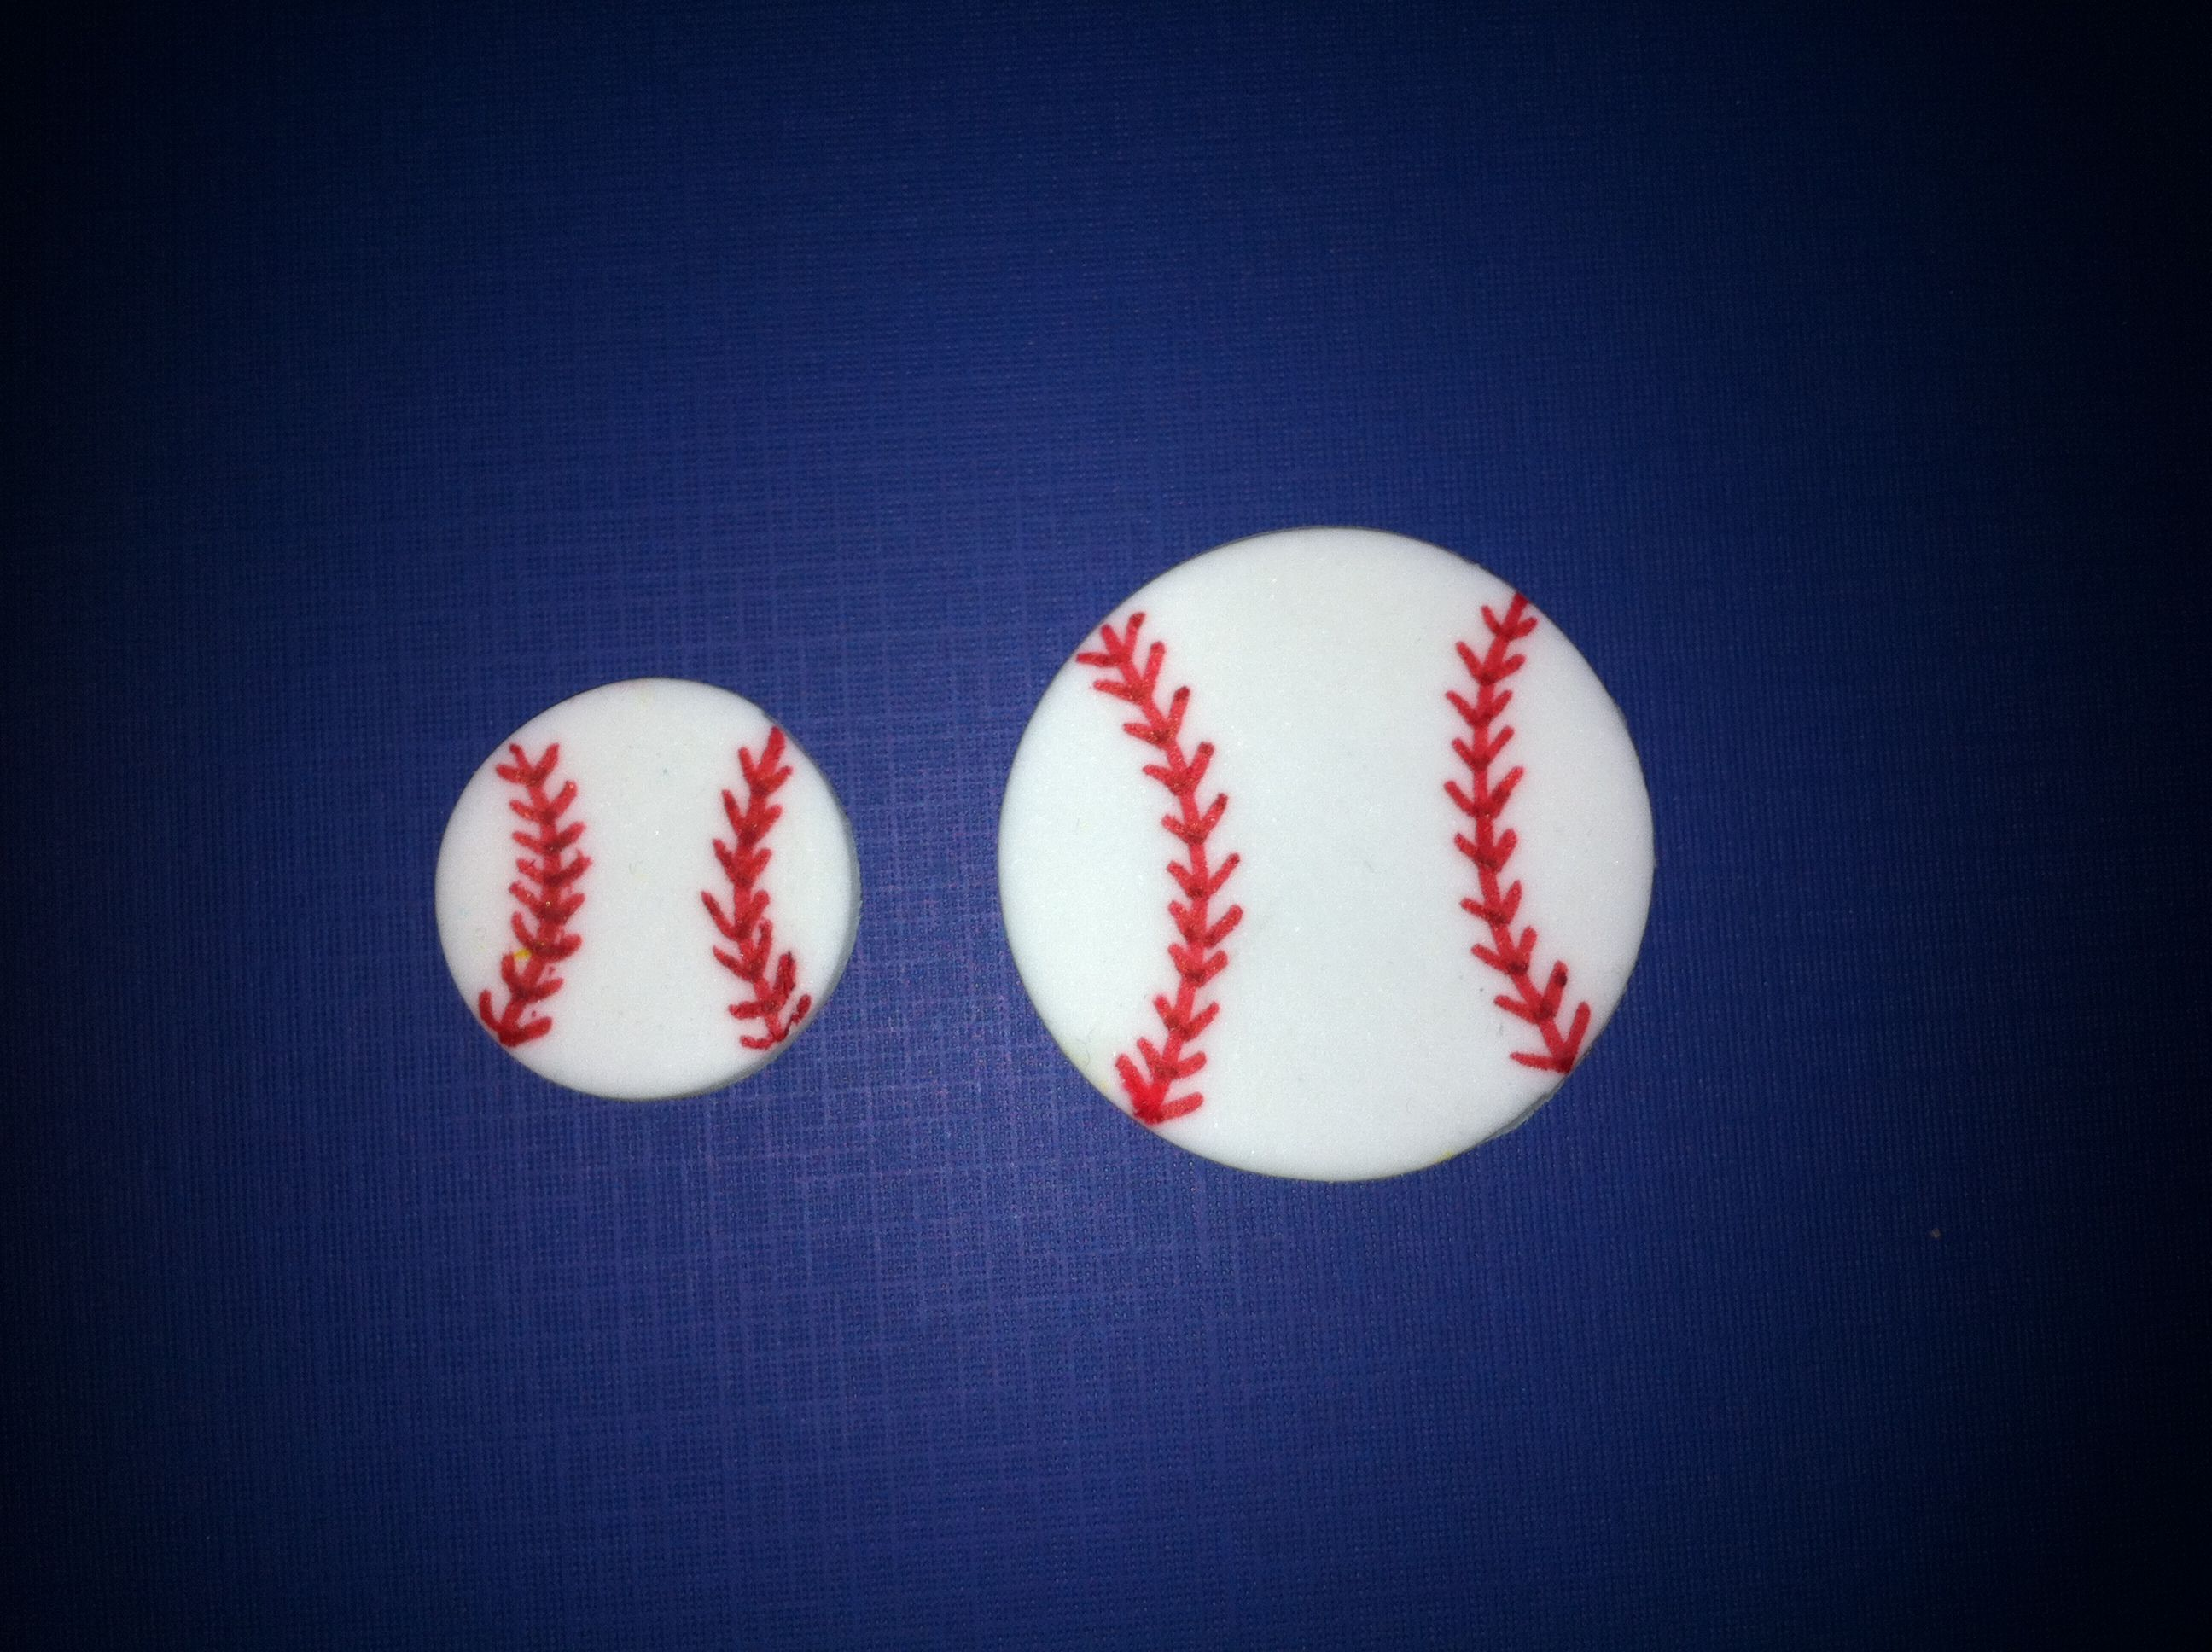 Baseball fondant cupcake topper and cake toppers!